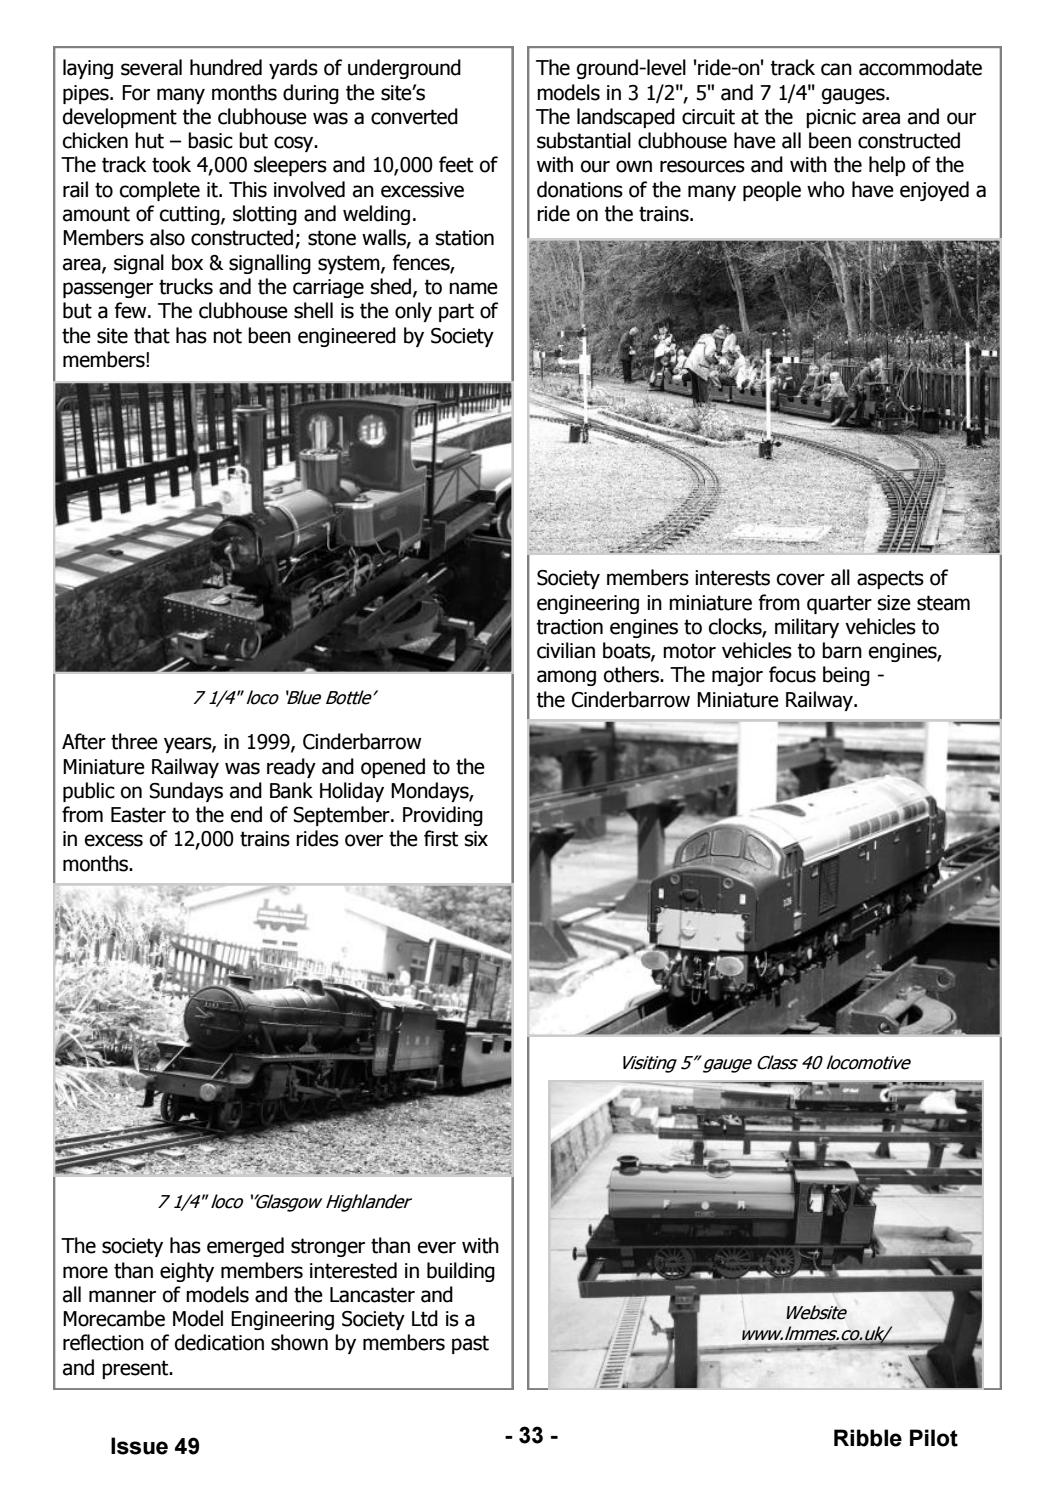 Ribble Pilot - Issue 49